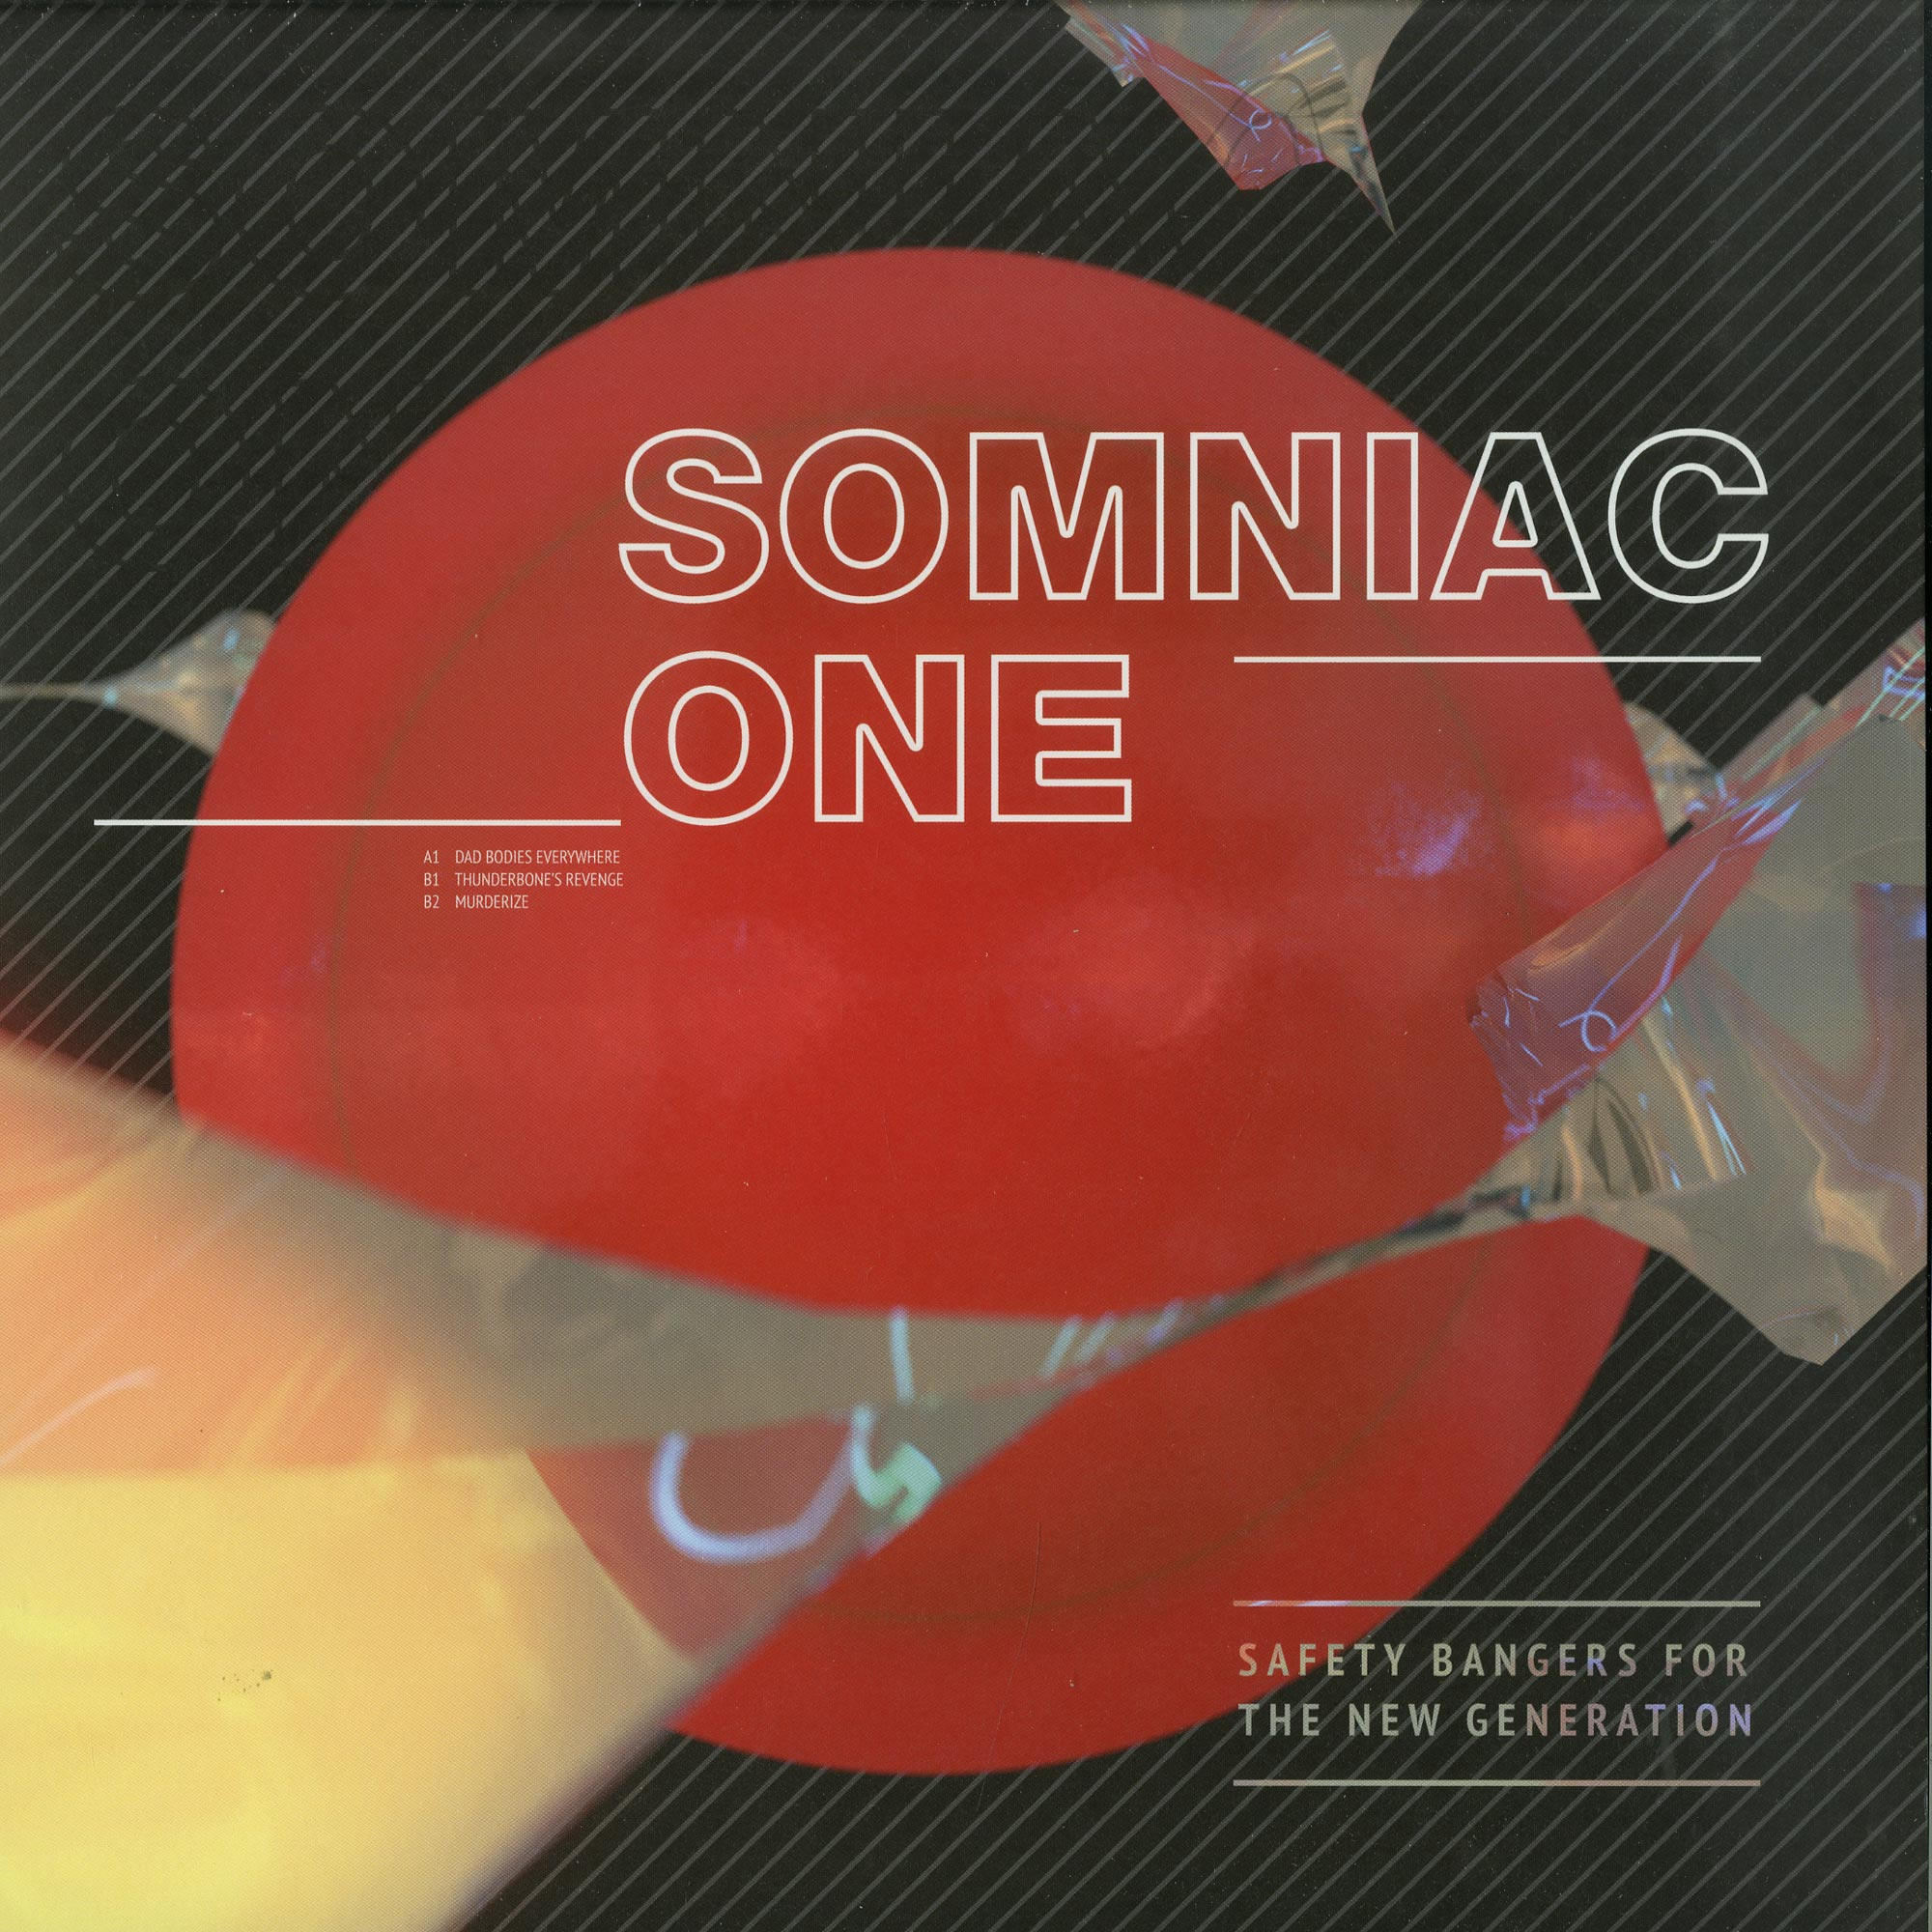 Somniac One - SAFETY BANGERS FOR THE NEW GENERATION